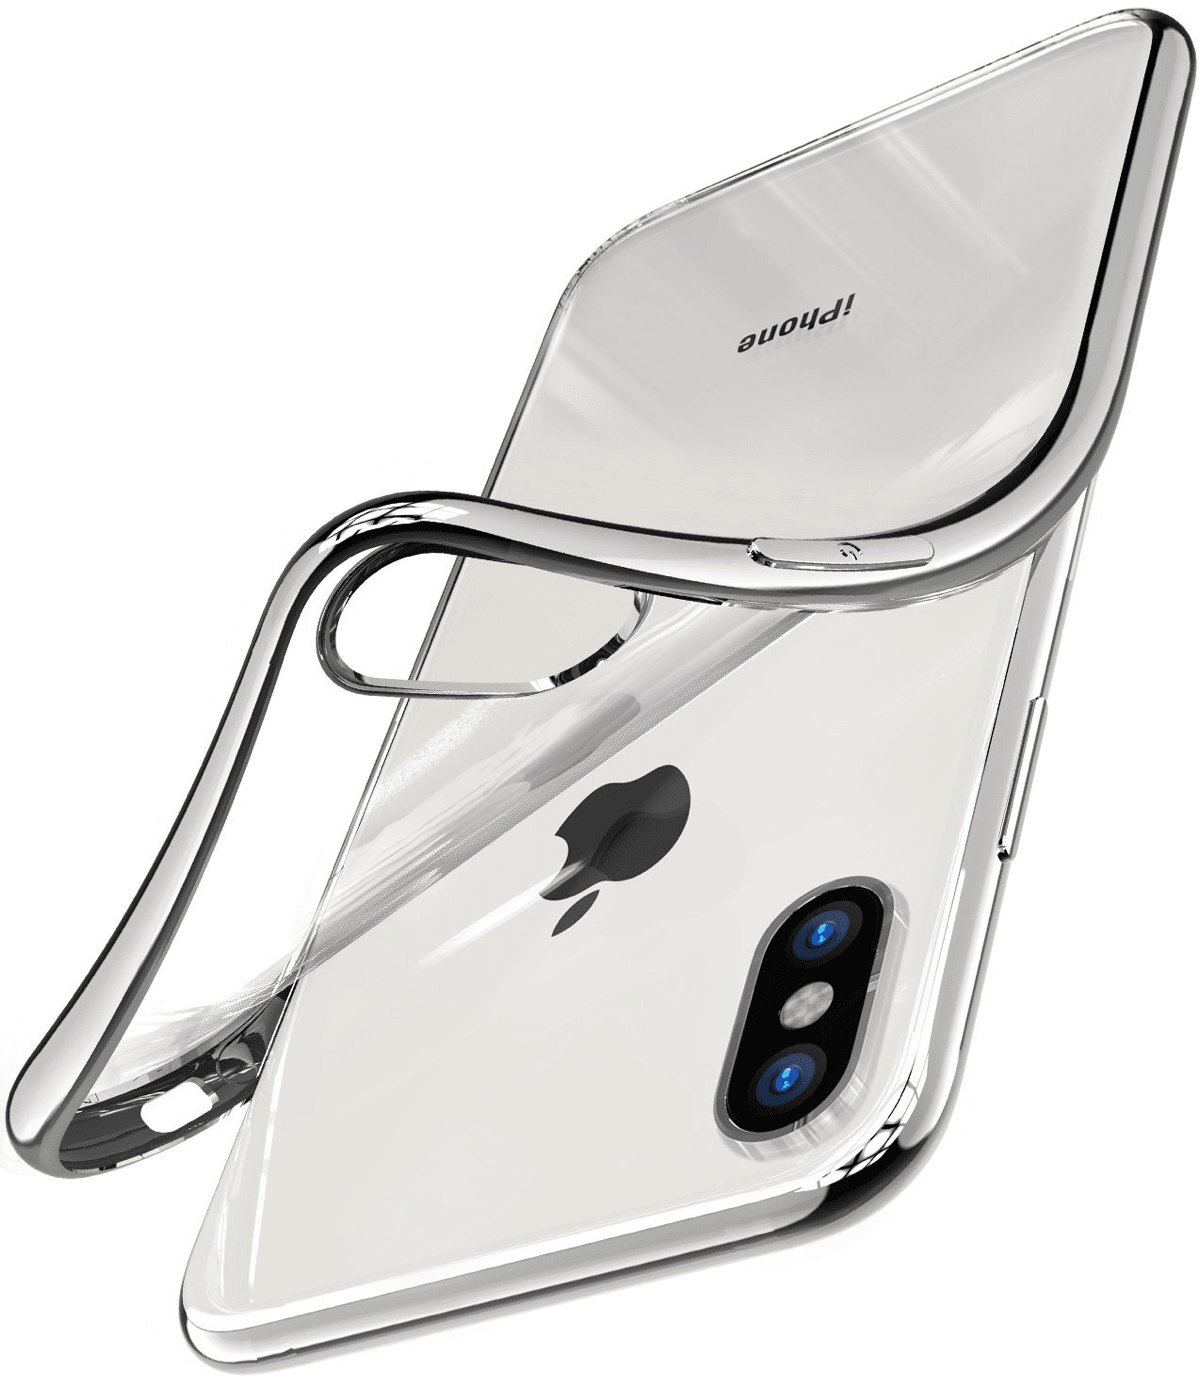 Clear Iphone S Case With Design